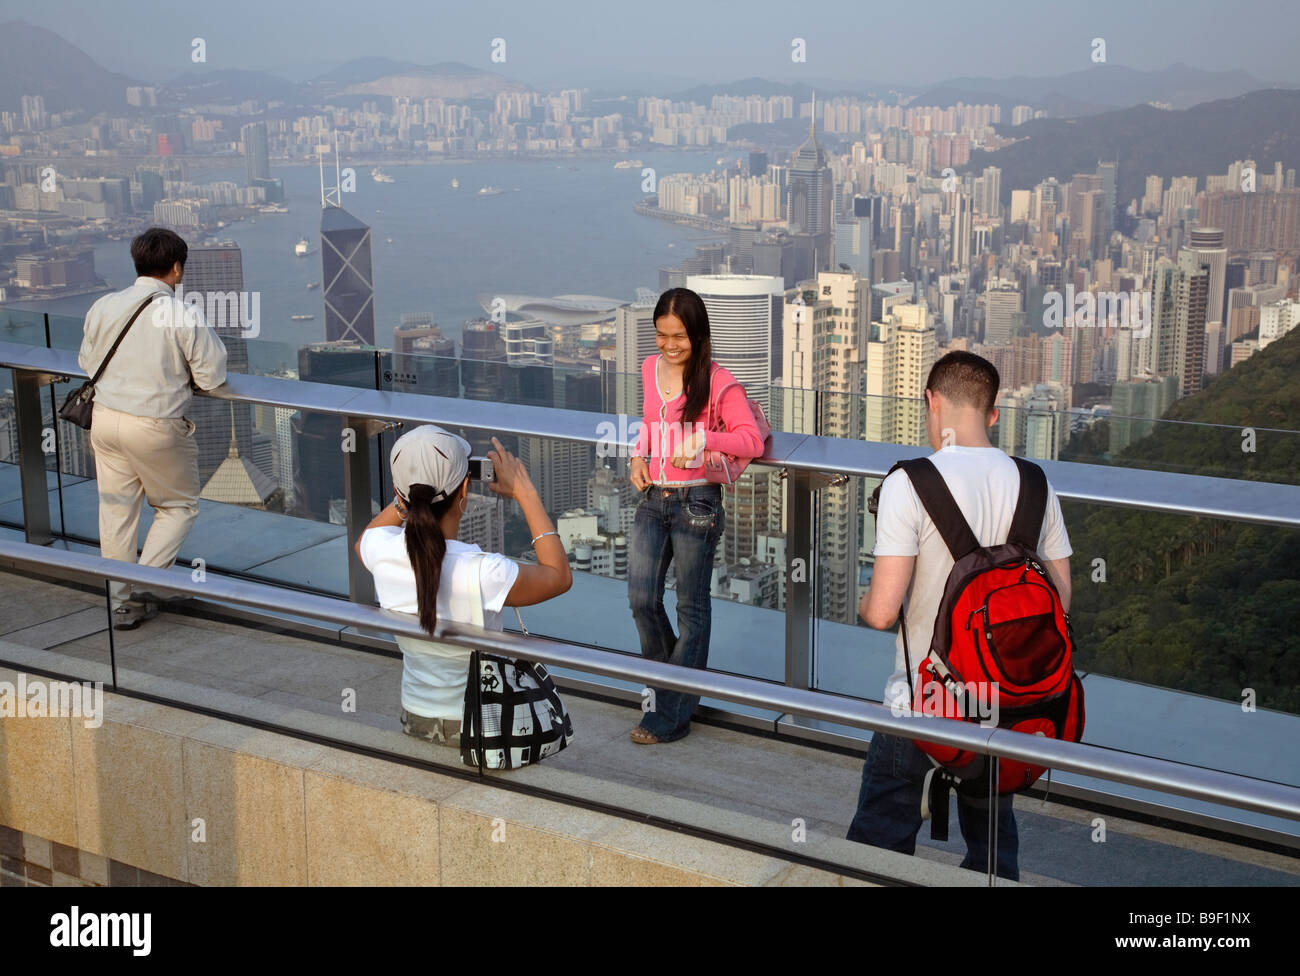 Tourists taking souvenir pictures from Hong Kong, China - Stock Image